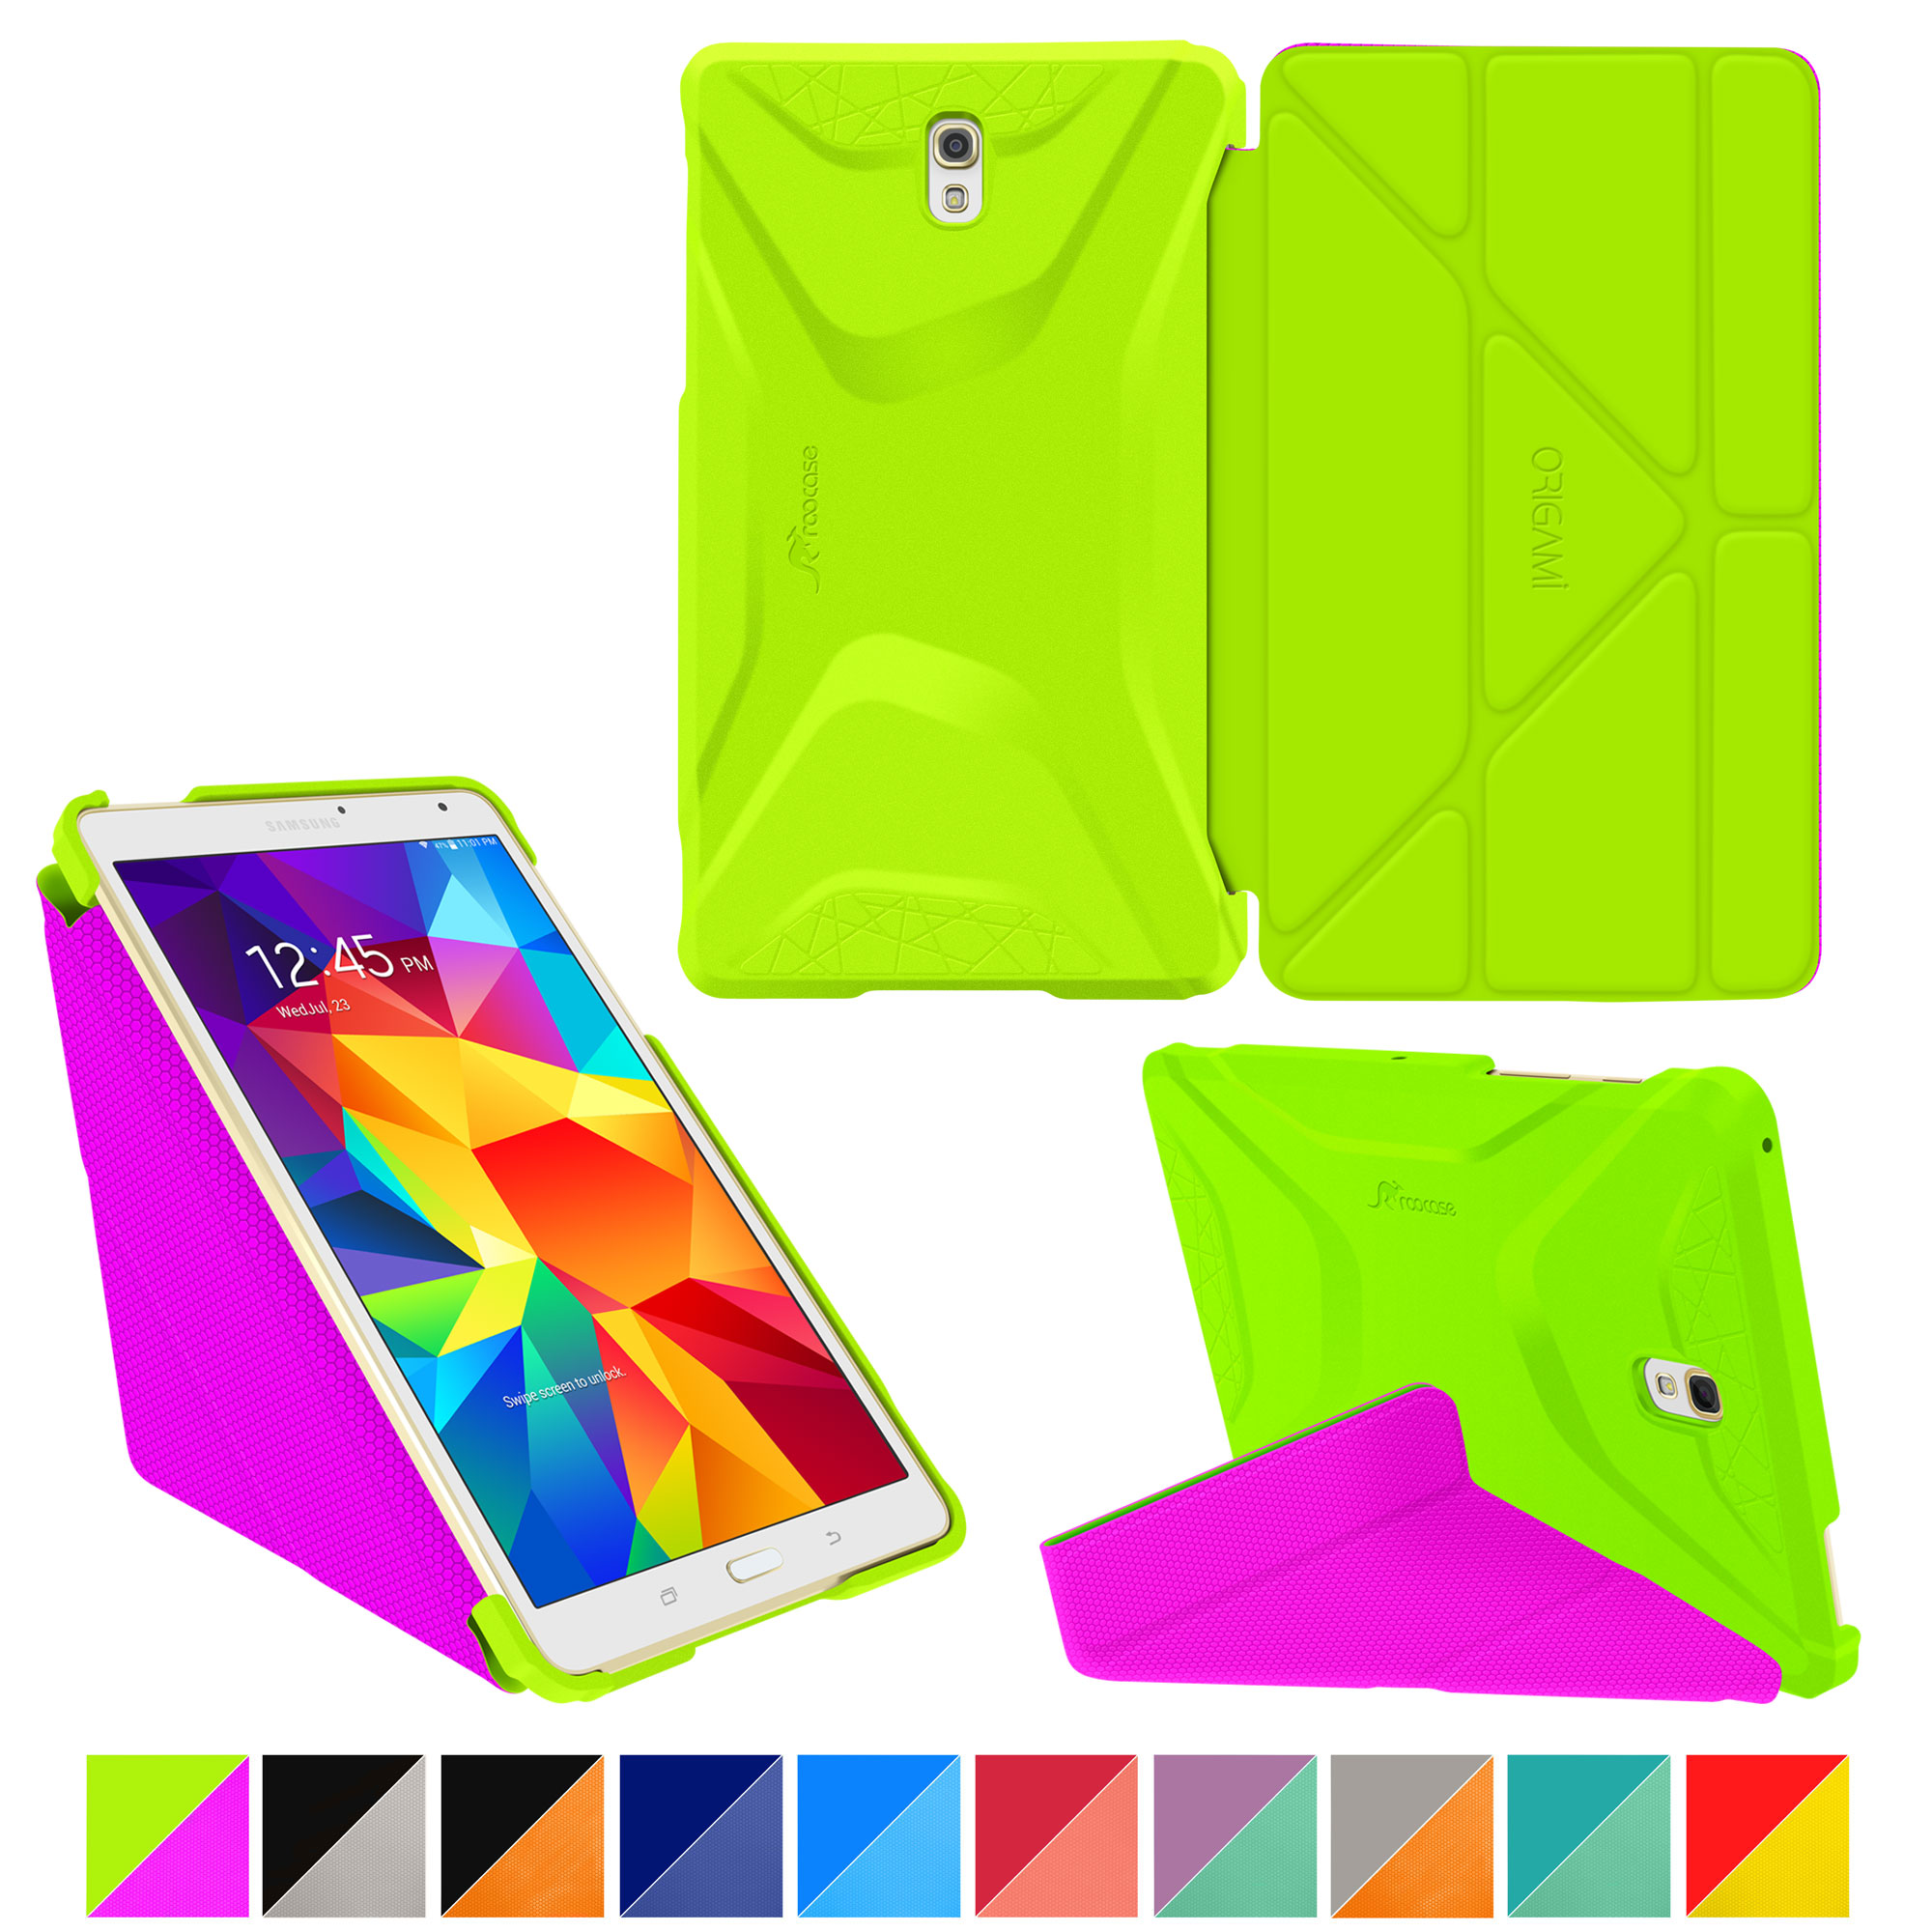 Galaxy Tab S 8.4 Case, Samsung Galaxy Tab S 8.4 case, rooCASE Origami (3 Way Stand) Slim Shell Lightweight Tablet Folio Smart Cover Green/Purple